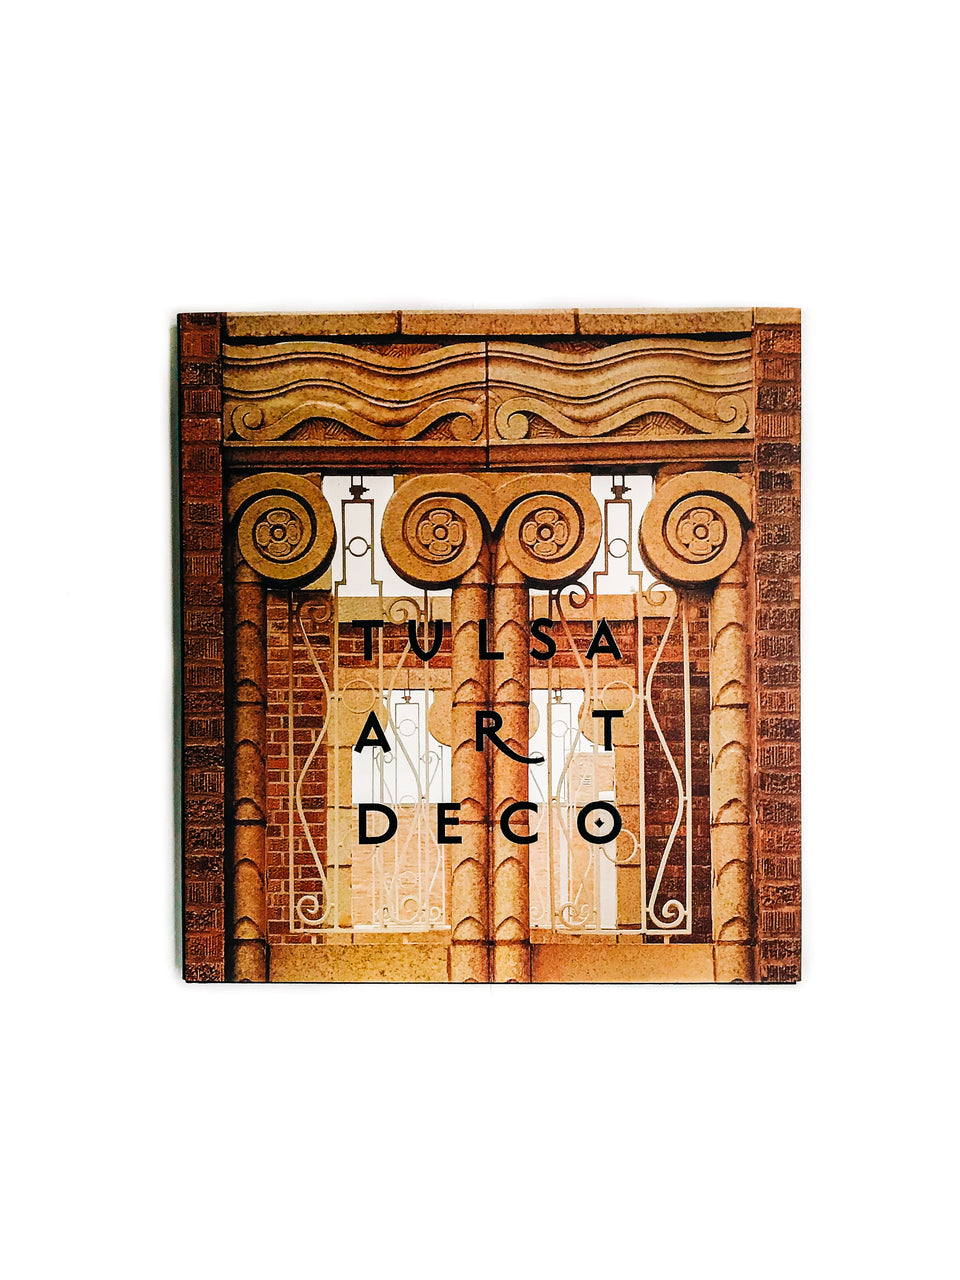 Tulsa Art Deco Book